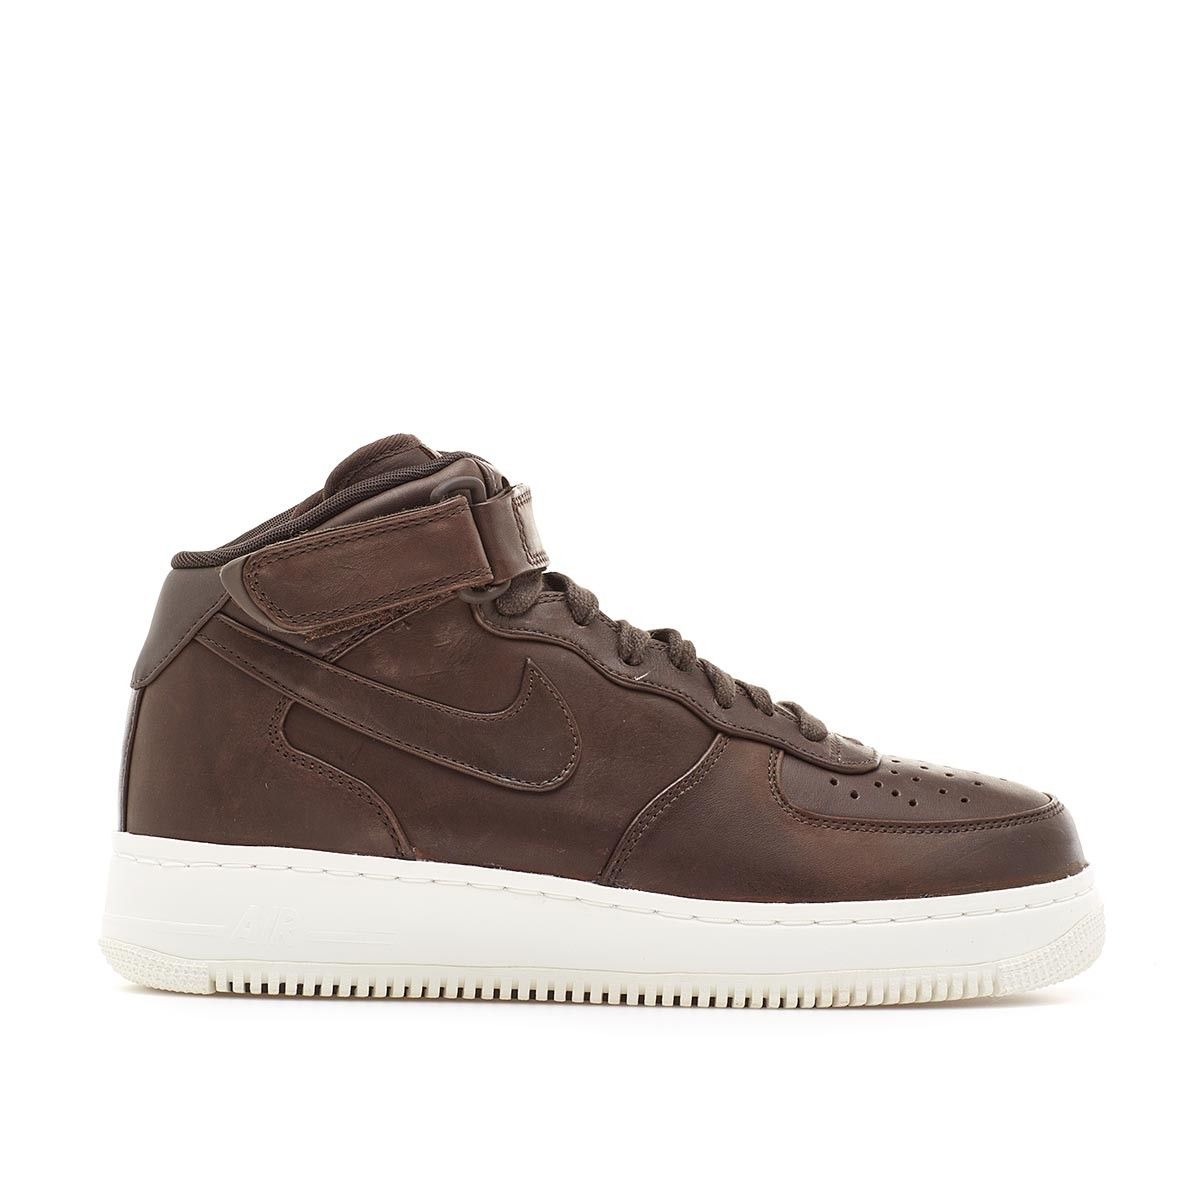 cheap for discount eacf3 375b0 NikeLab Air Force 1 Mid from Nike Quickstrike collection in velvet brown